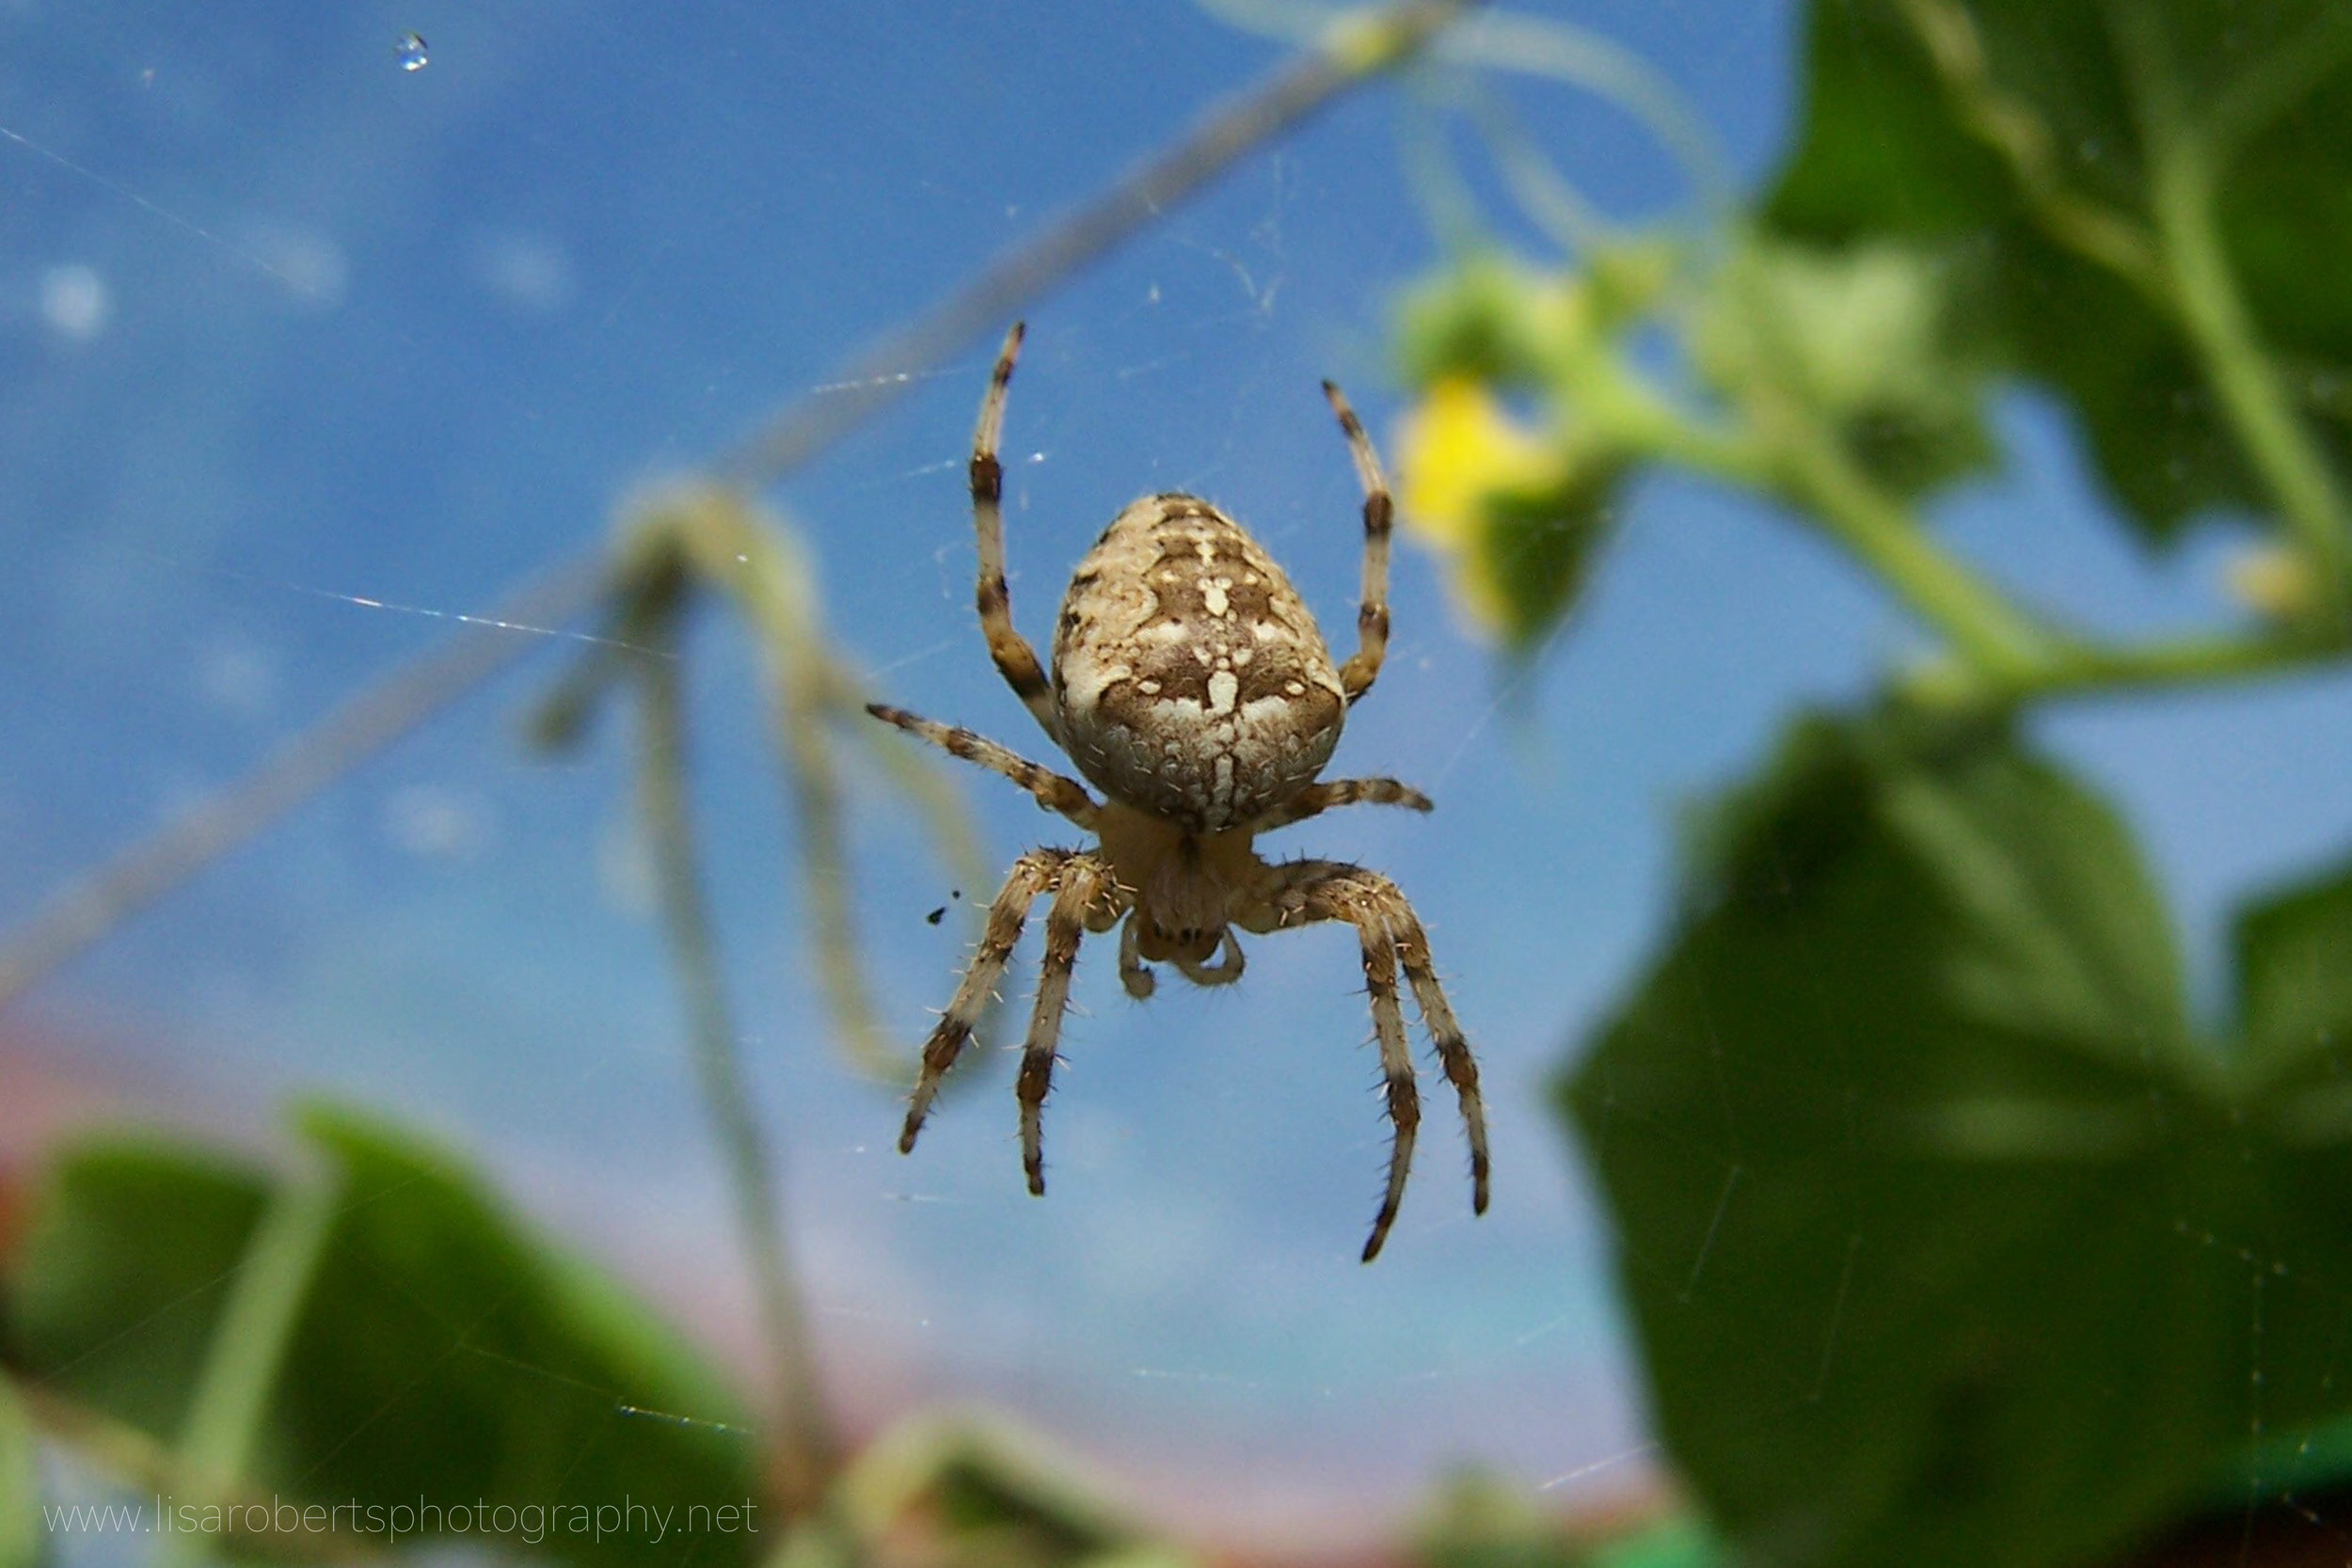 European Garden Spider on web